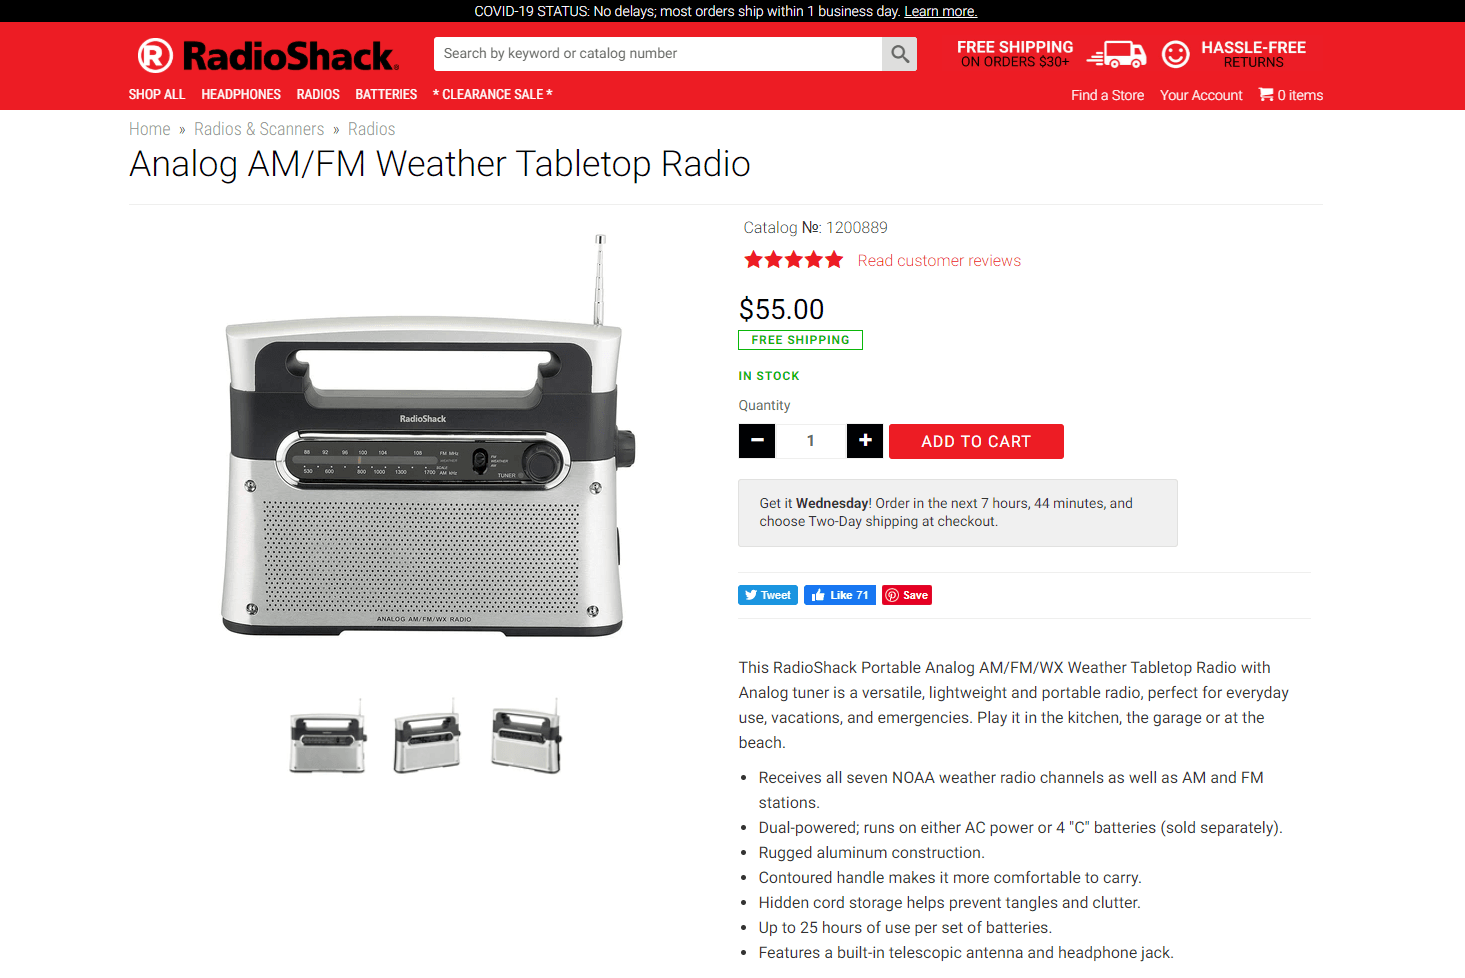 Social proof on RadioShack's website featuring an AM/FM weather tabletop radio